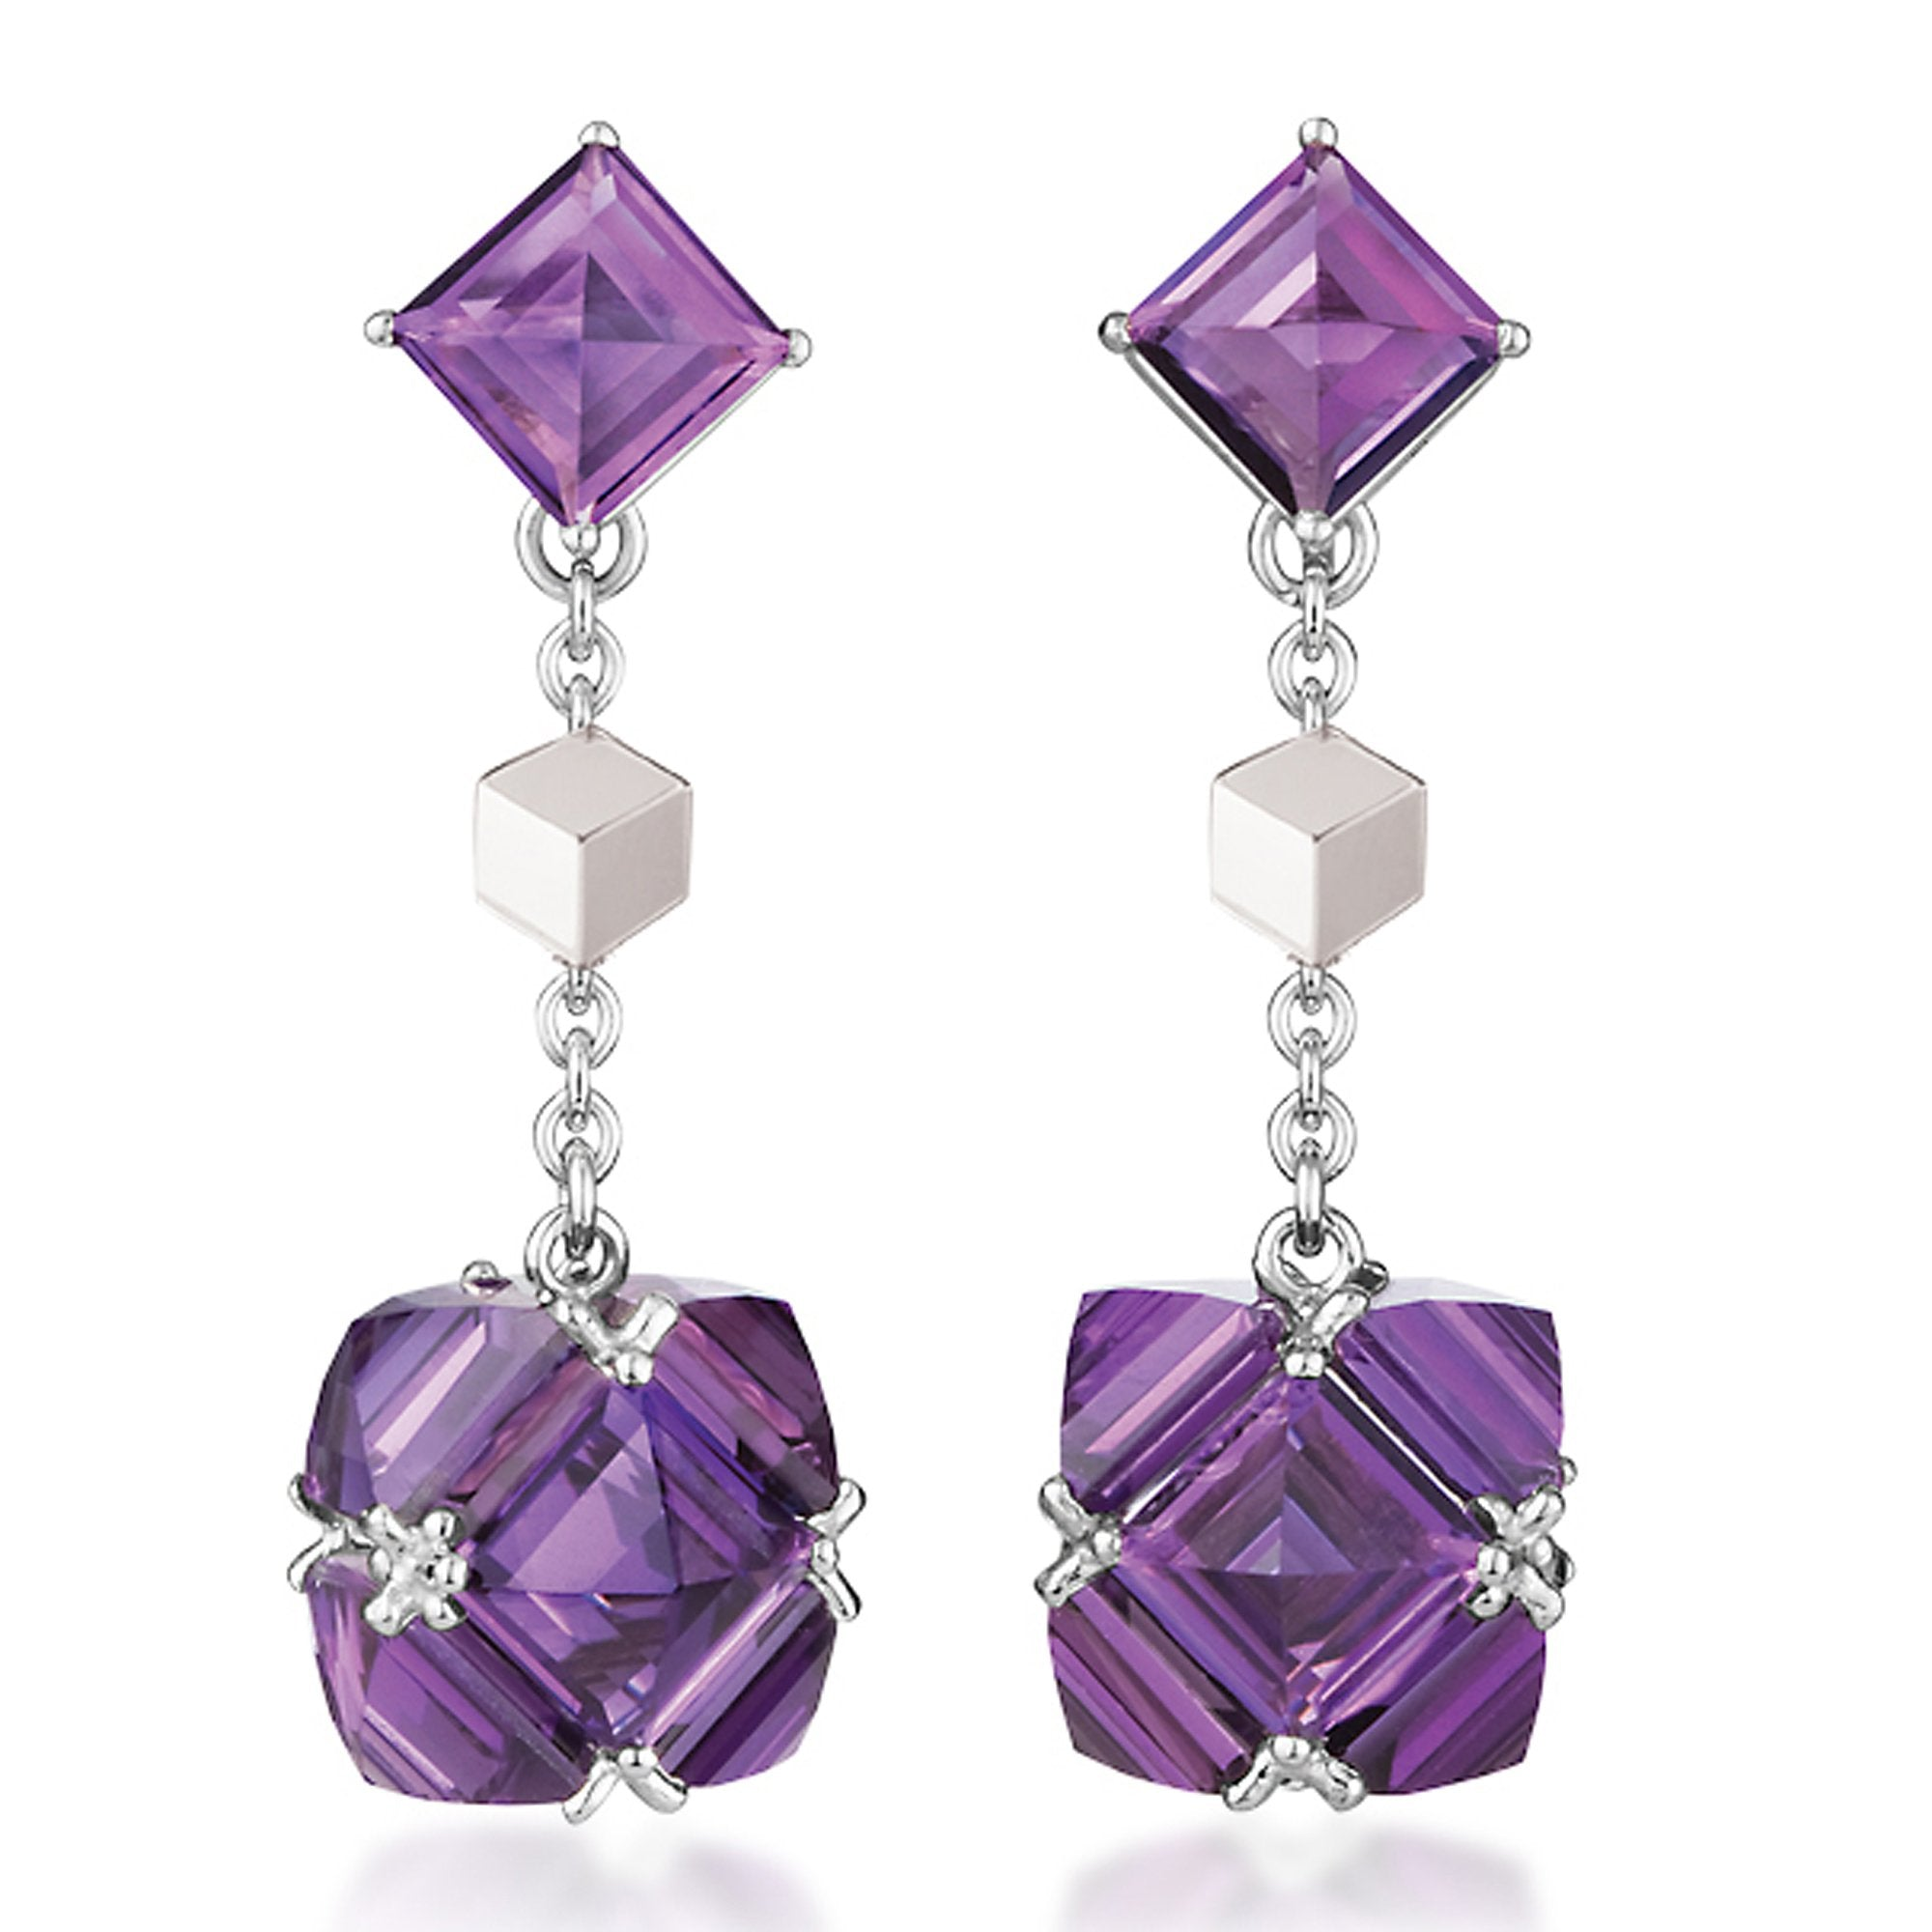 Amethyst 'Very PC®' Earrings, Petite - Paolo Costagli - 1